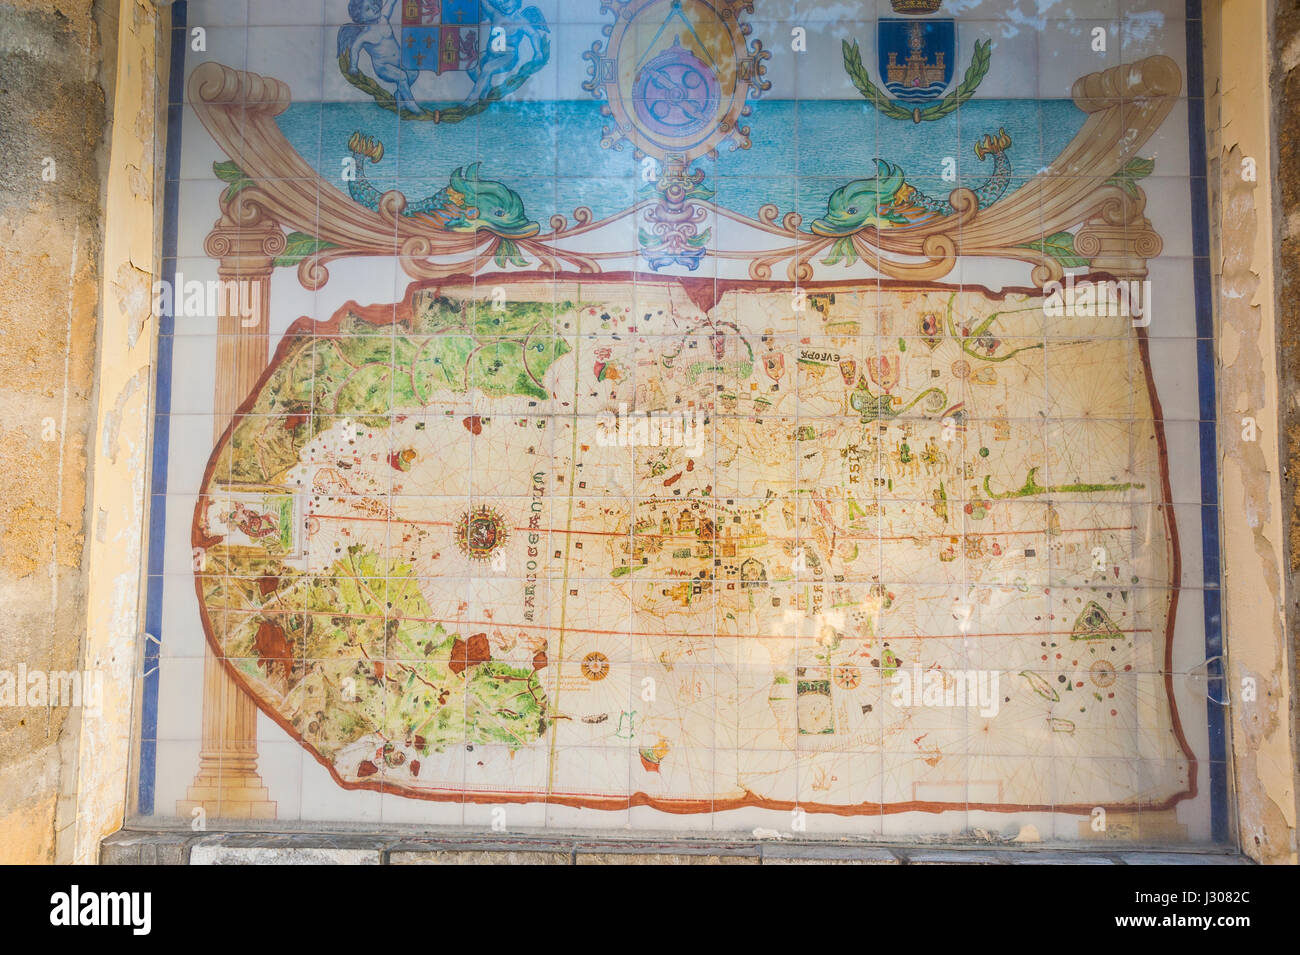 Historic world map of 1500 from seafarer Juan de la Cosa, El Puerto ...